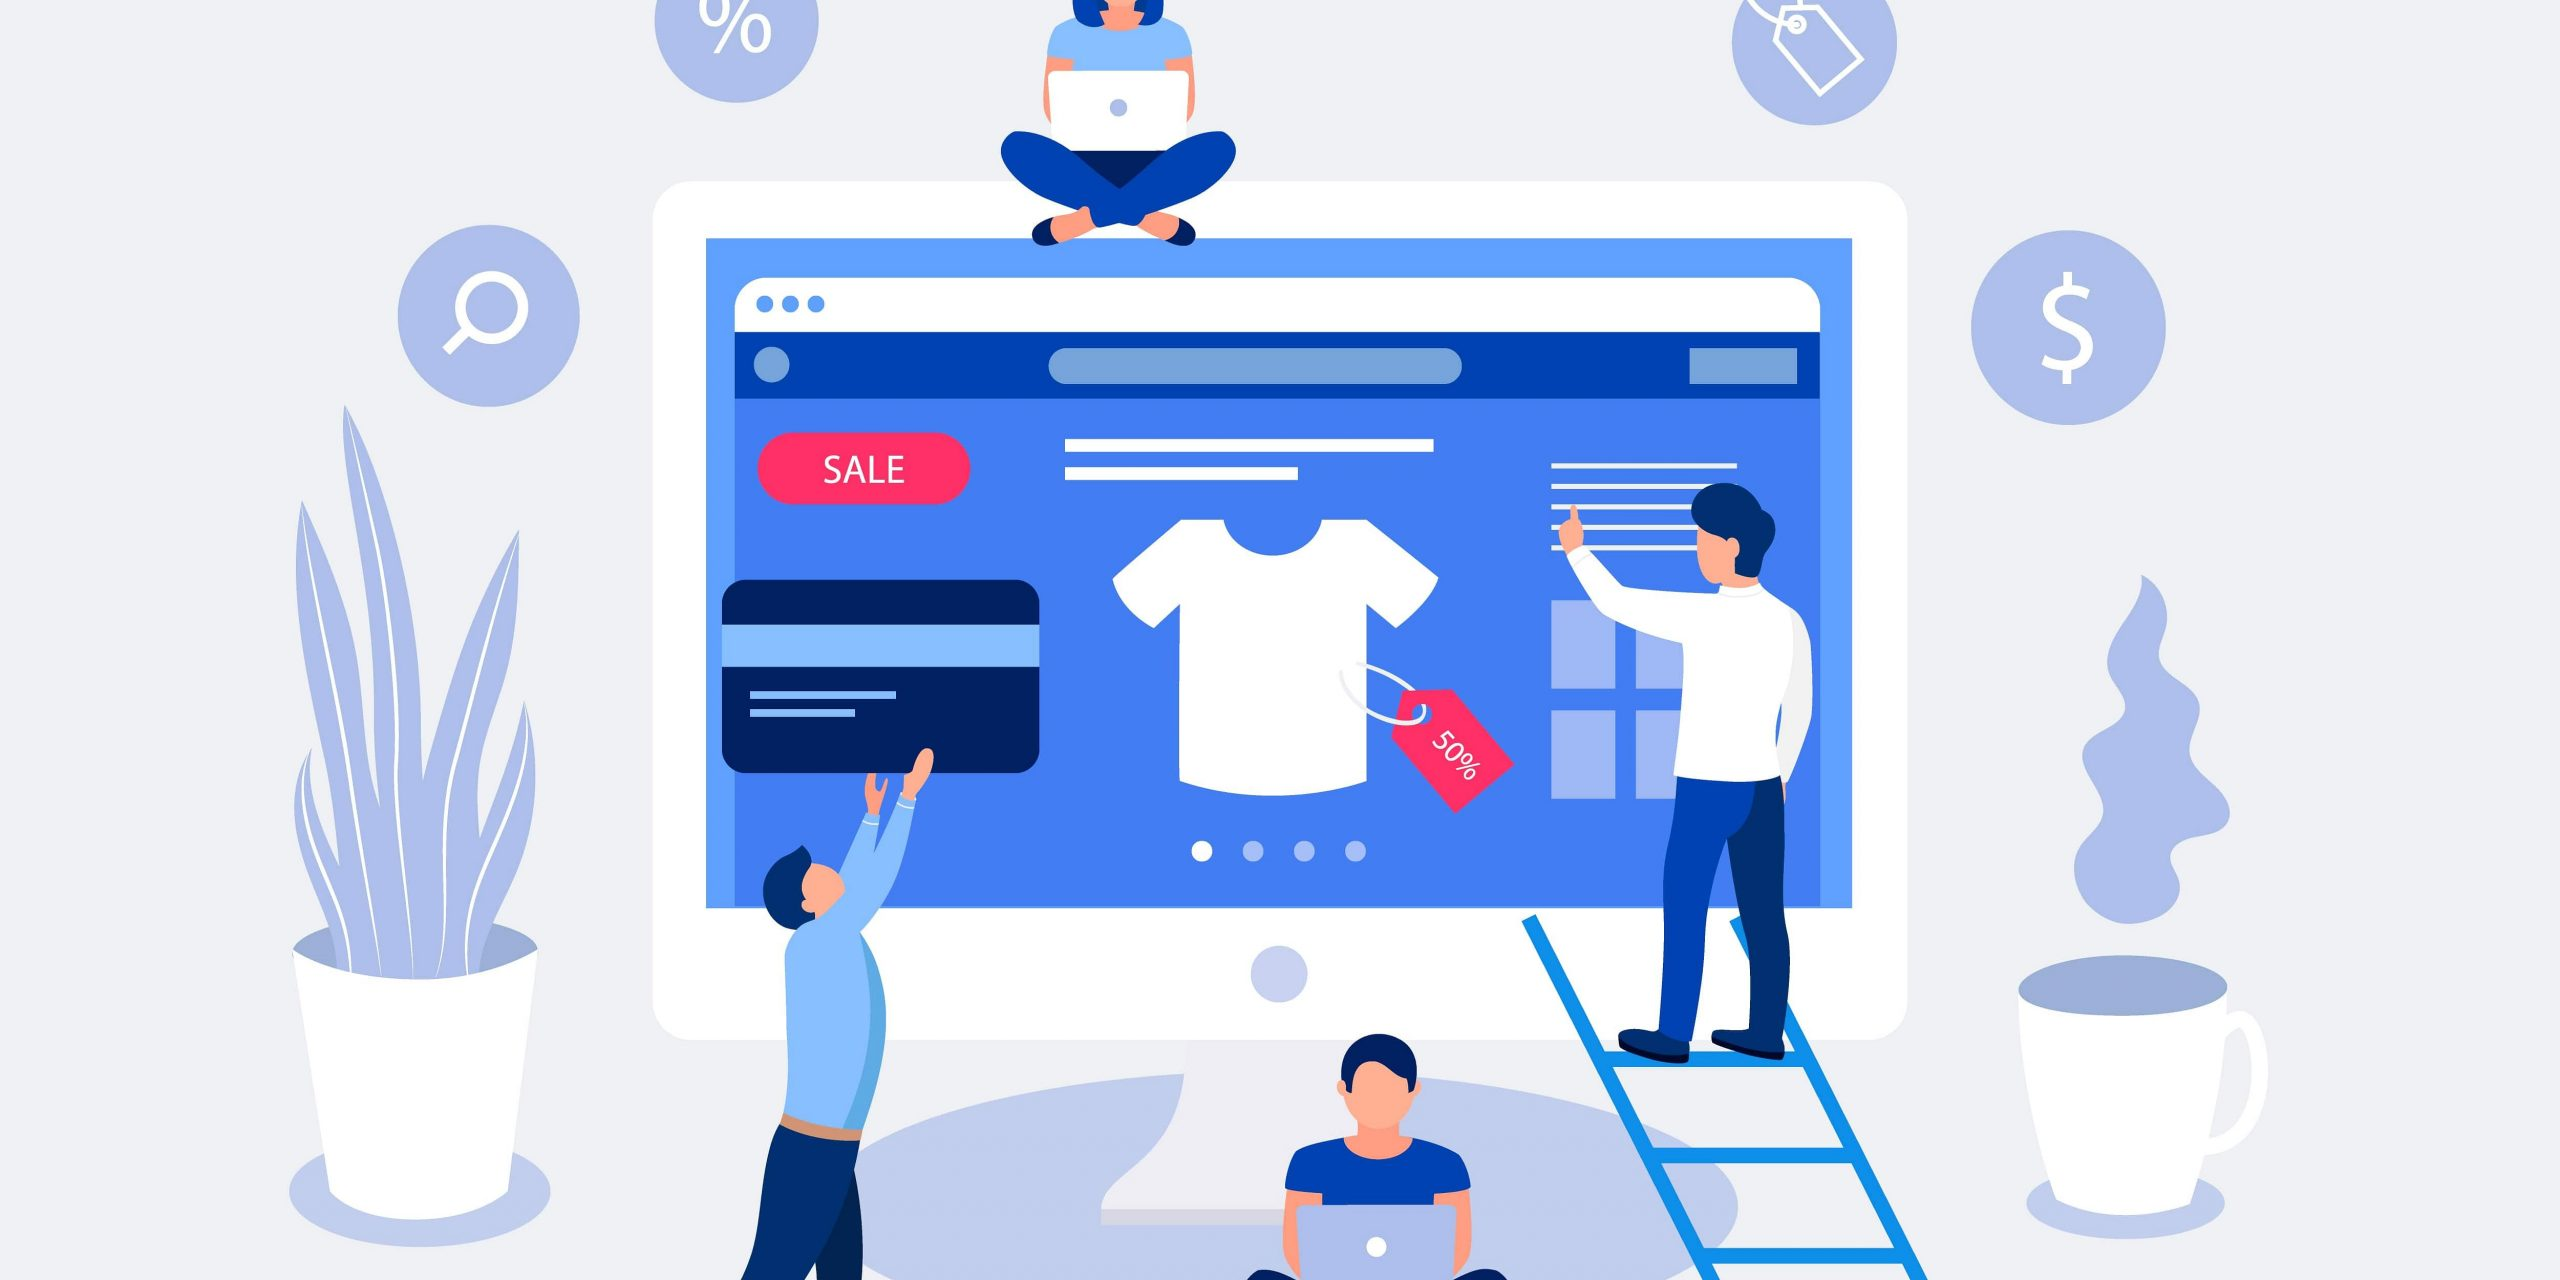 Tips to Get Success with Your Ecommerce Business - Digital4design